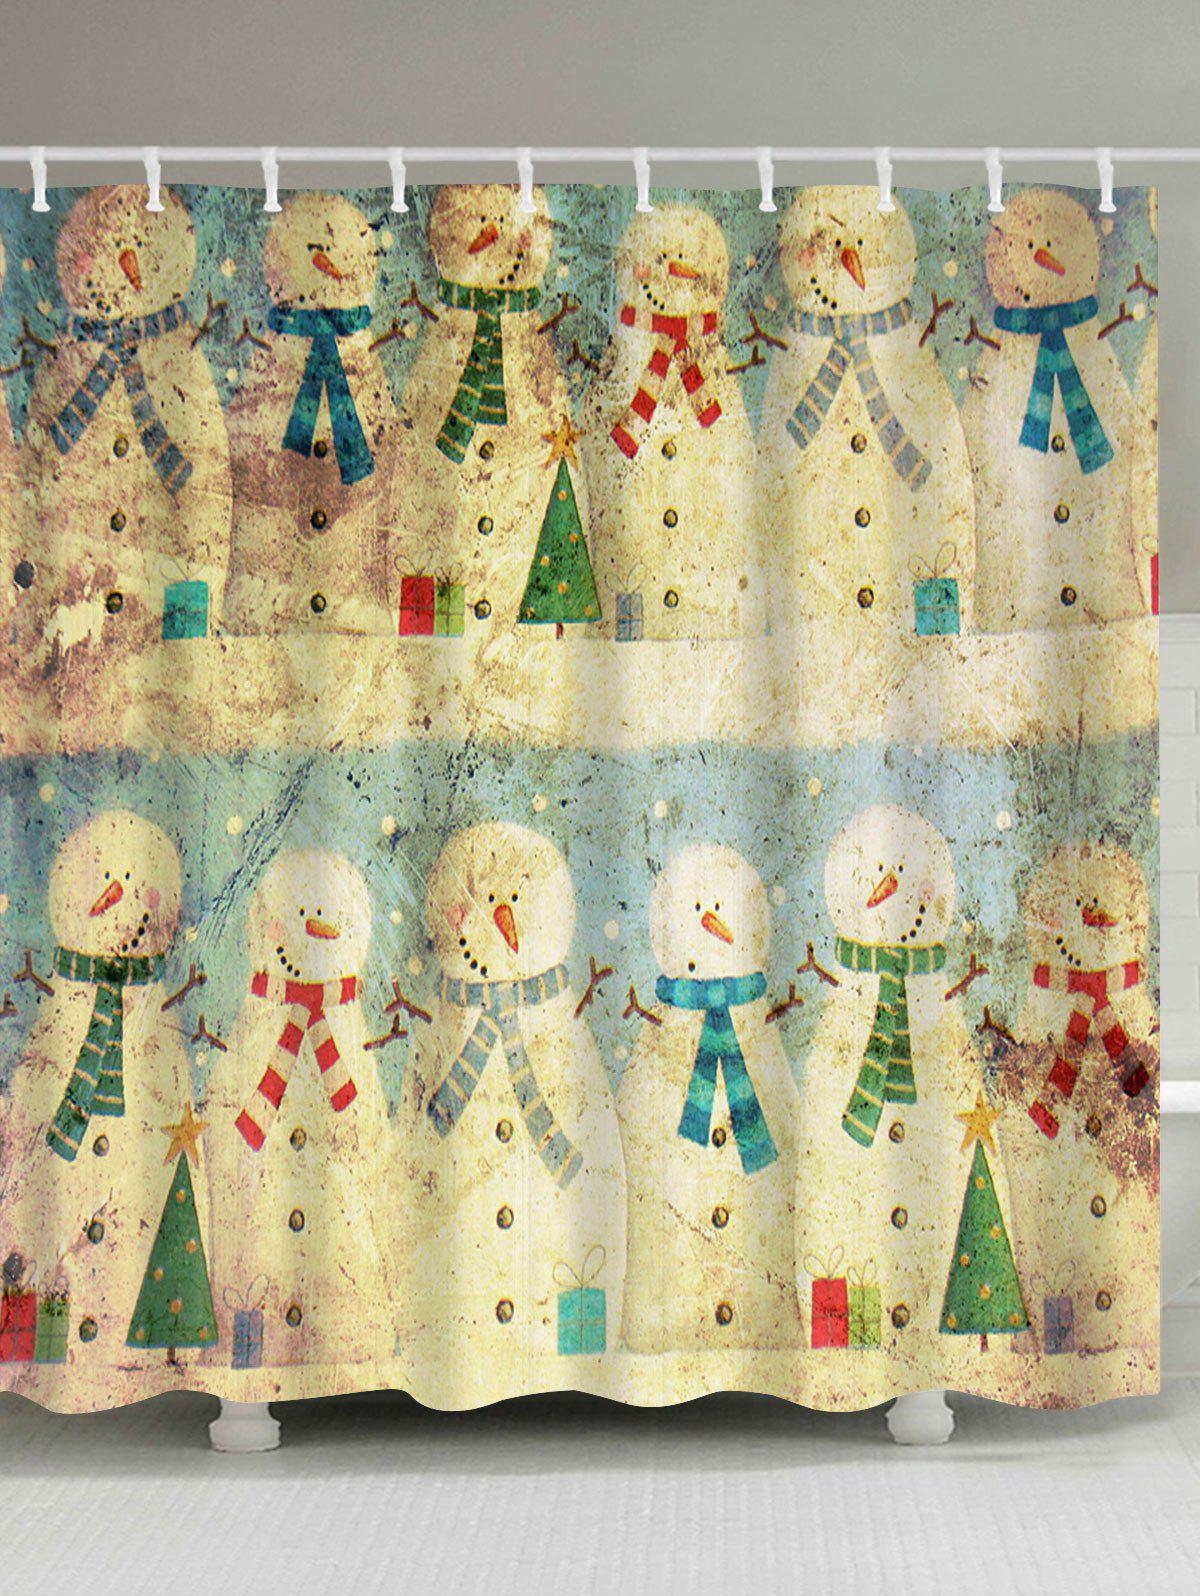 Vintage Christmas Snowman Family Waterproof Bath CurtainHOME<br><br>Size: W59 INCH * L71 INCH; Color: COLORMIX; Products Type: Shower Curtains; Materials: Polyester; Pattern: Snowman; Style: Festival; Number of Hook Holes: W59 inch*L71 inch: 10; W71 inch*L71 inch: 12; W71 inch*L79 inch: 12; Package Contents: 1 x Shower Curtain 1 x Hooks (Set);